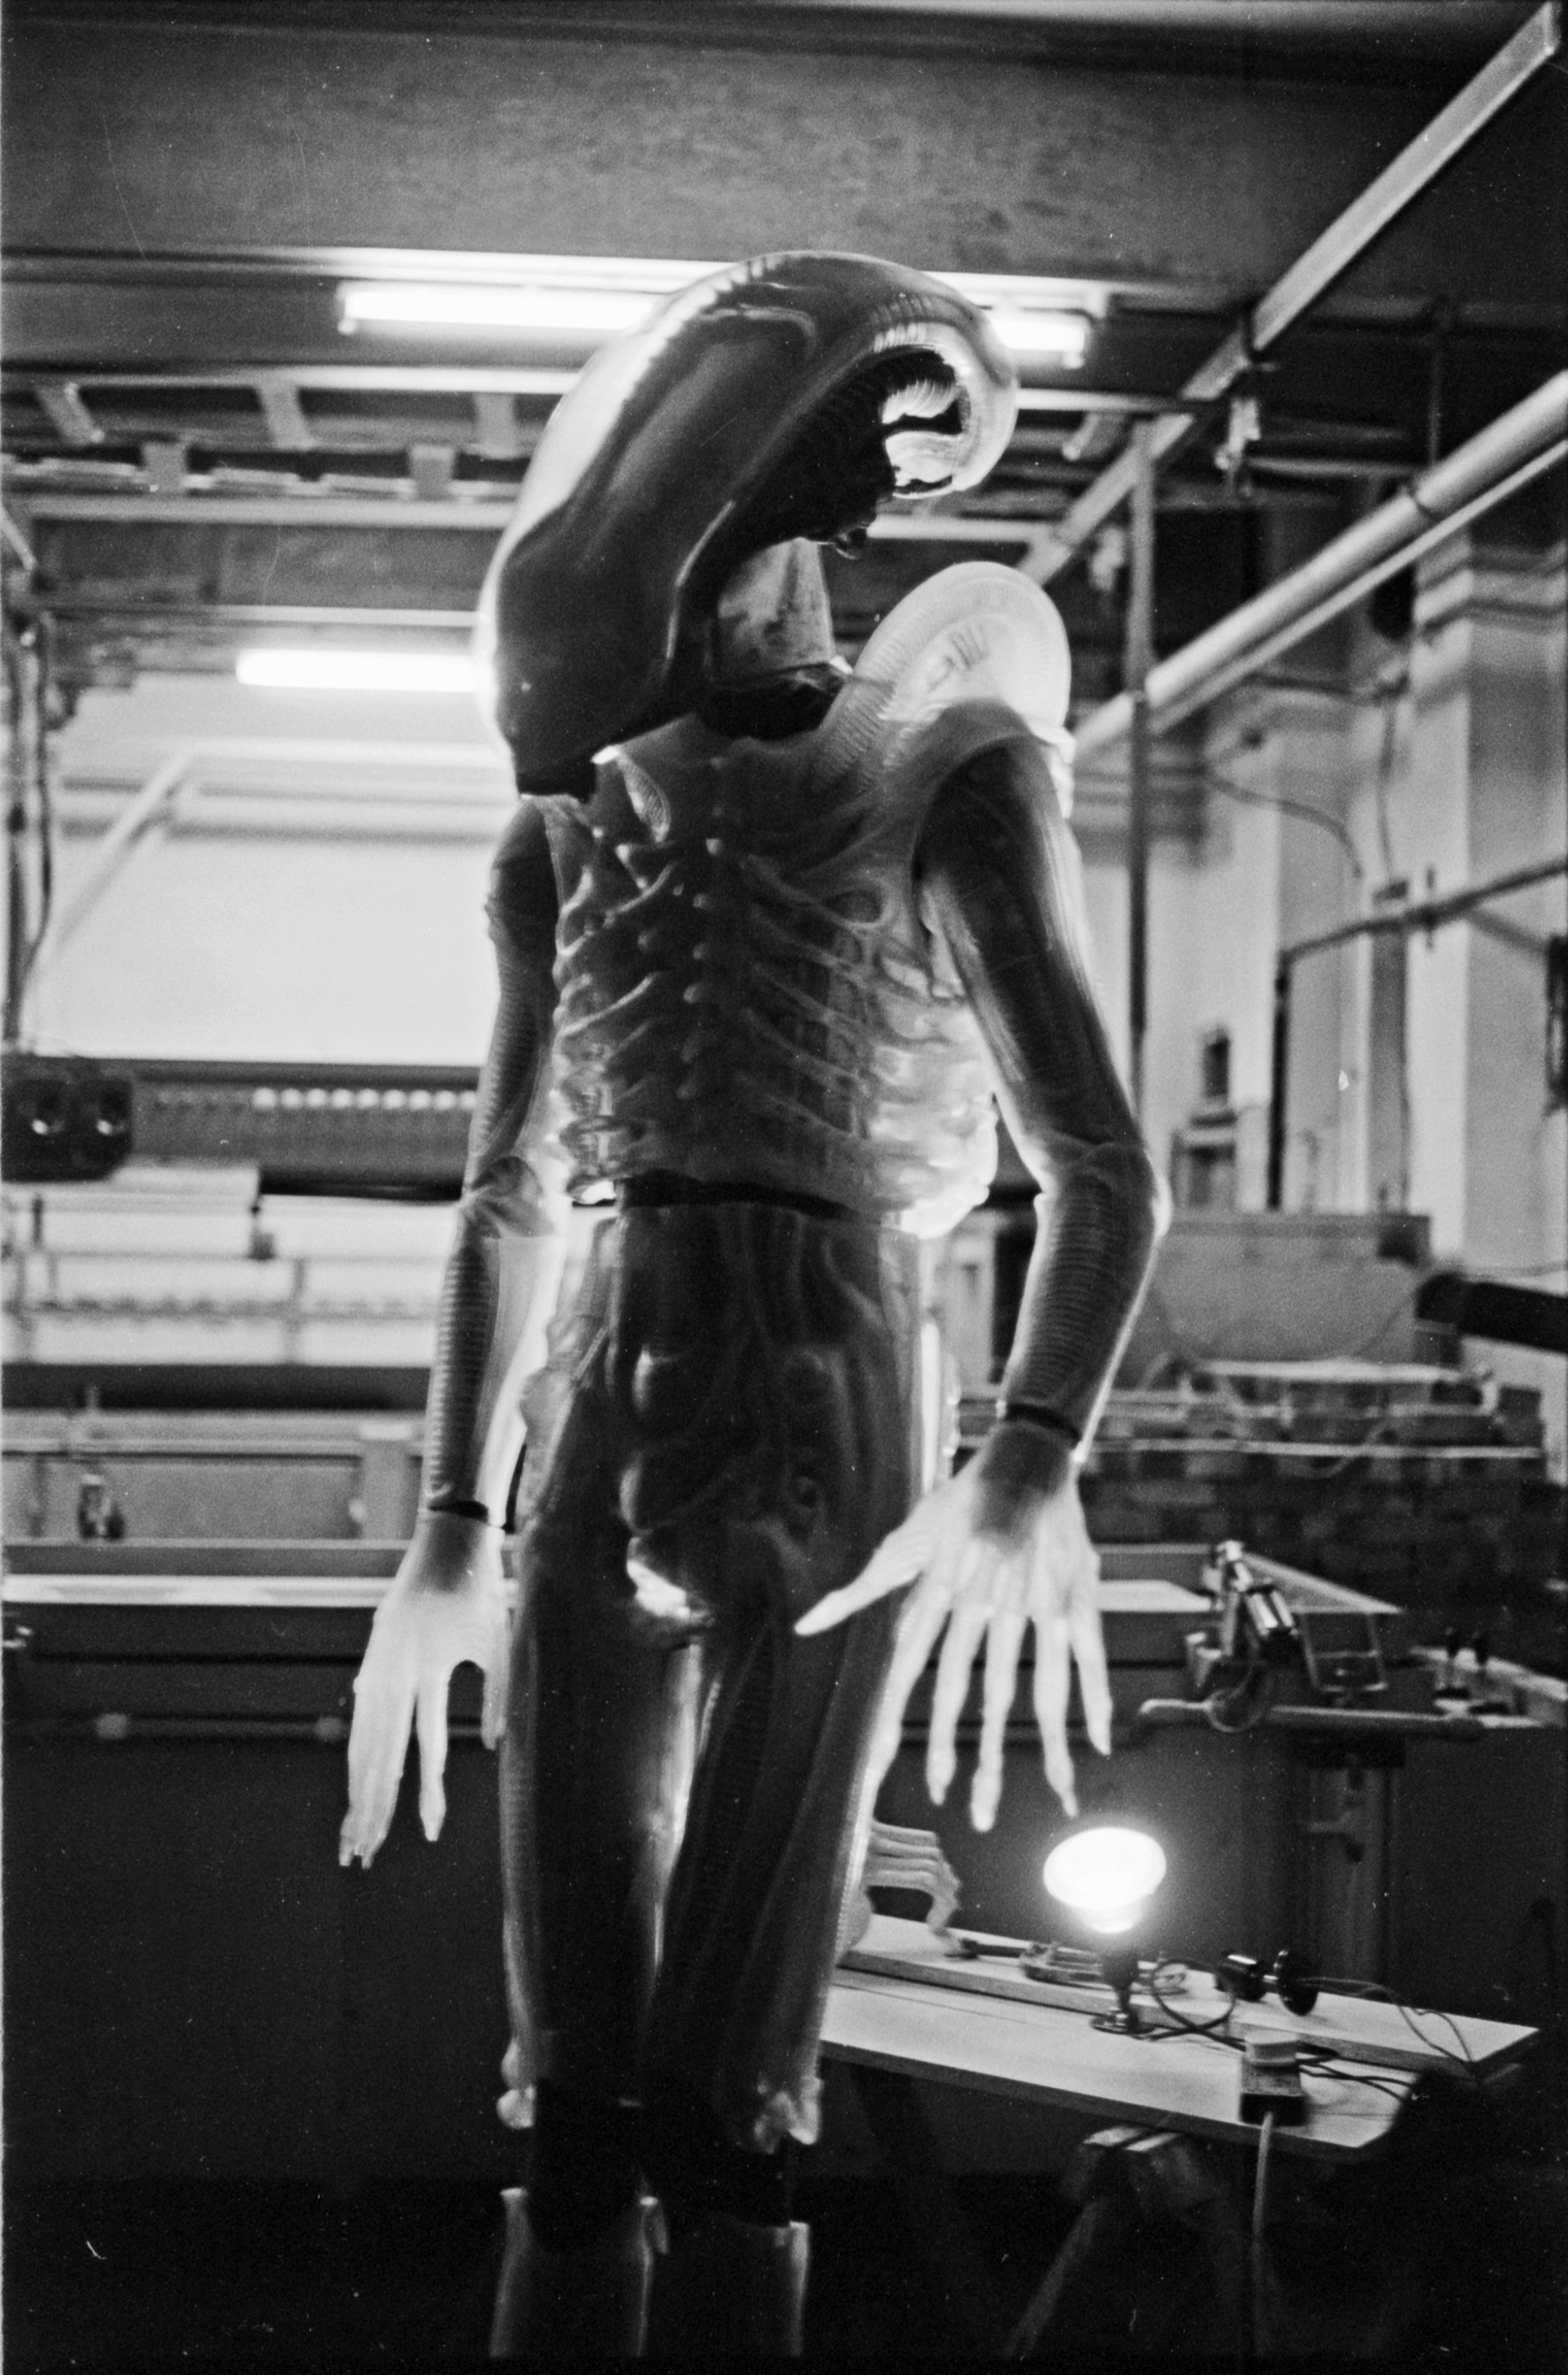 Giger`s concept - Giger`s concept of a monster that was translucent, showing all internal organisms,was a tall order for Andrew.To develop a material and invent a moulding process in the space of the time scale of a film shoot, was always going to be challenging.